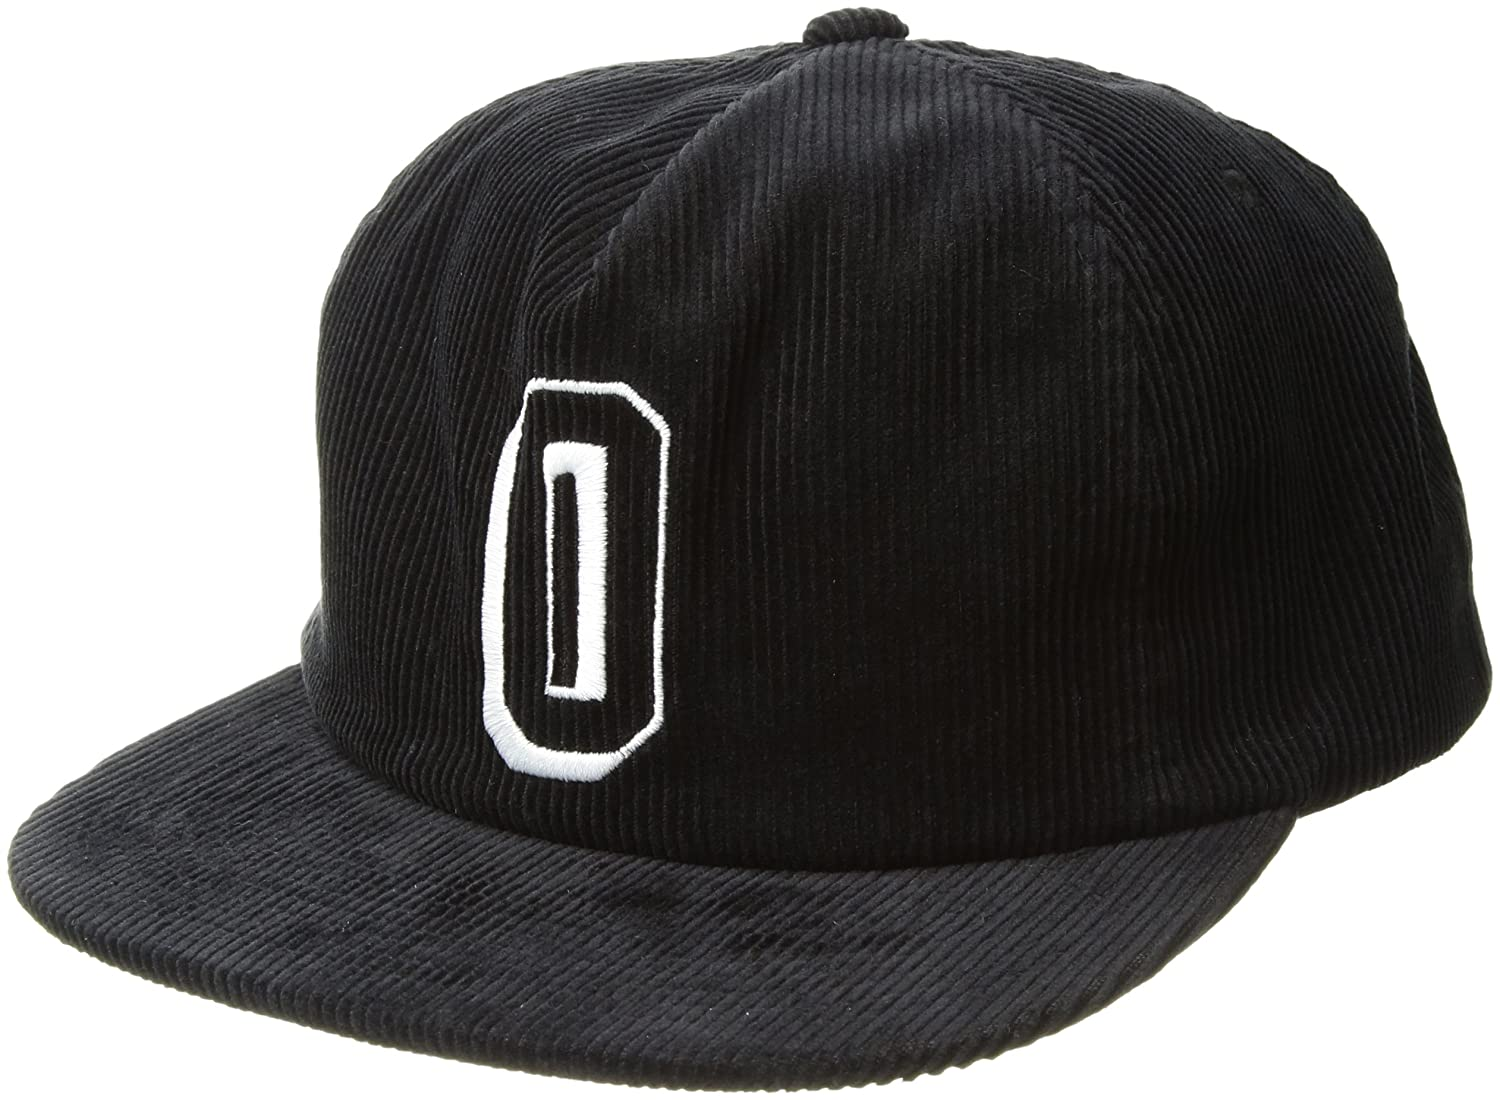 2f7286d9a Obey Men's Outlaw Snapback Low Unstructured Hat